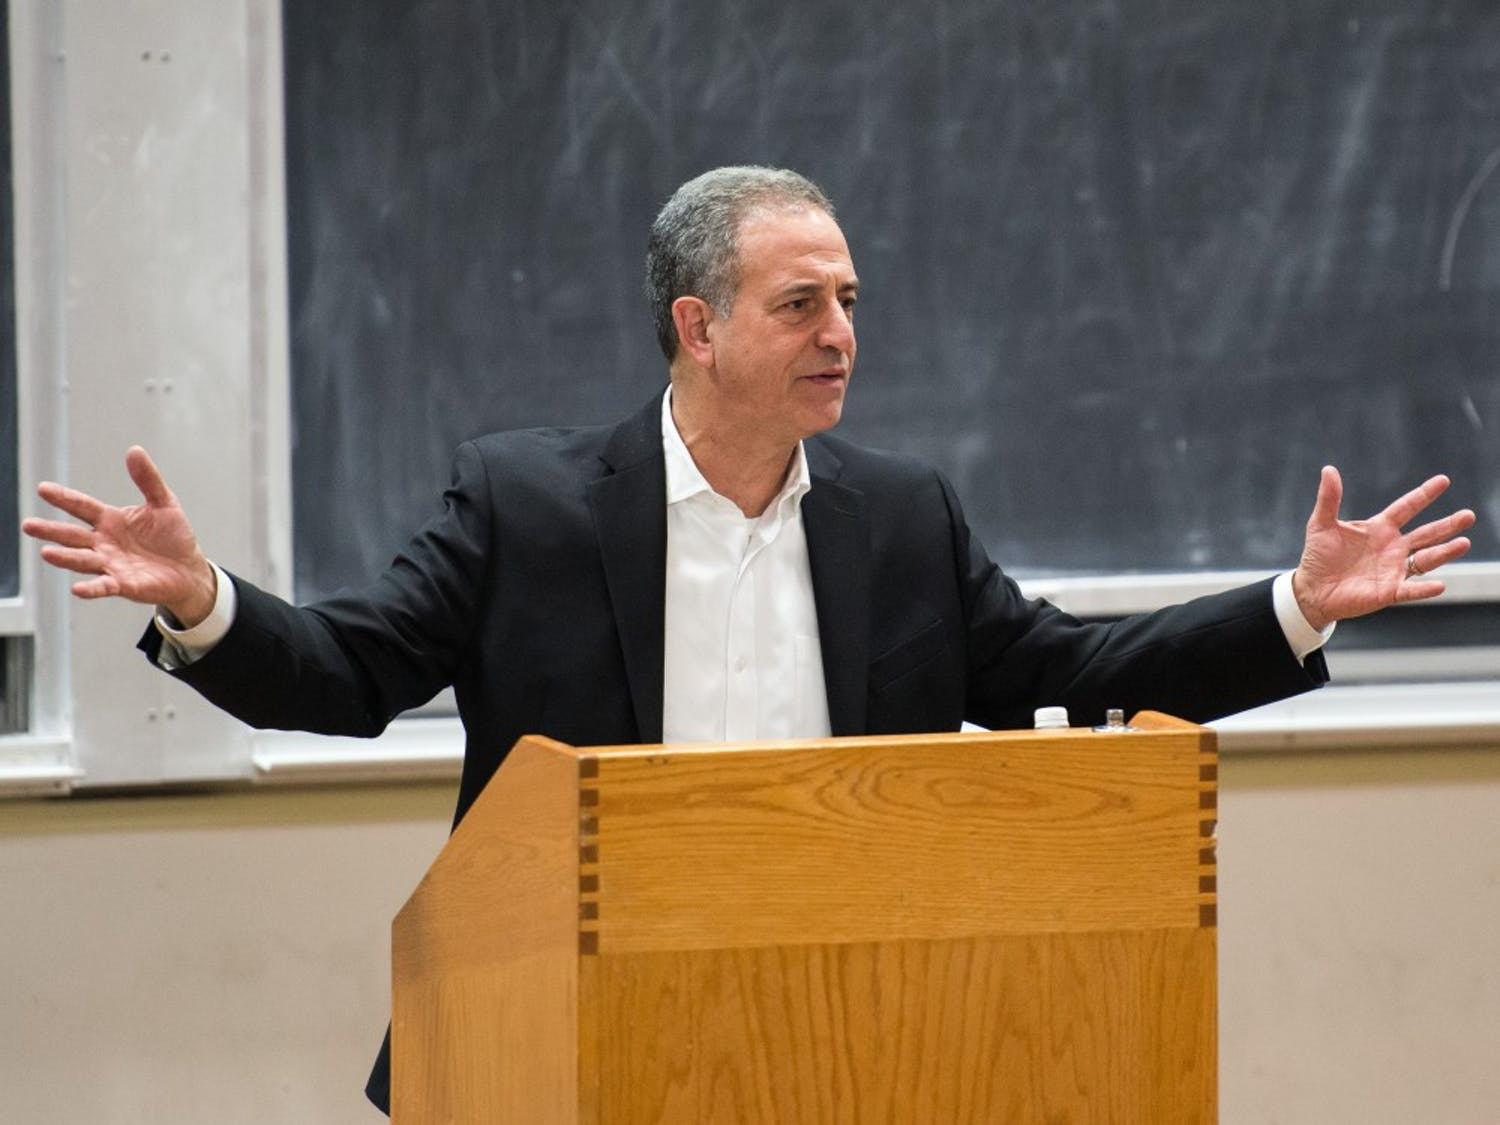 Former U.S. Sen. Russ Feingold says more must be done to combat college affordability in his speech before the UW-Madison College Democrats Monday.